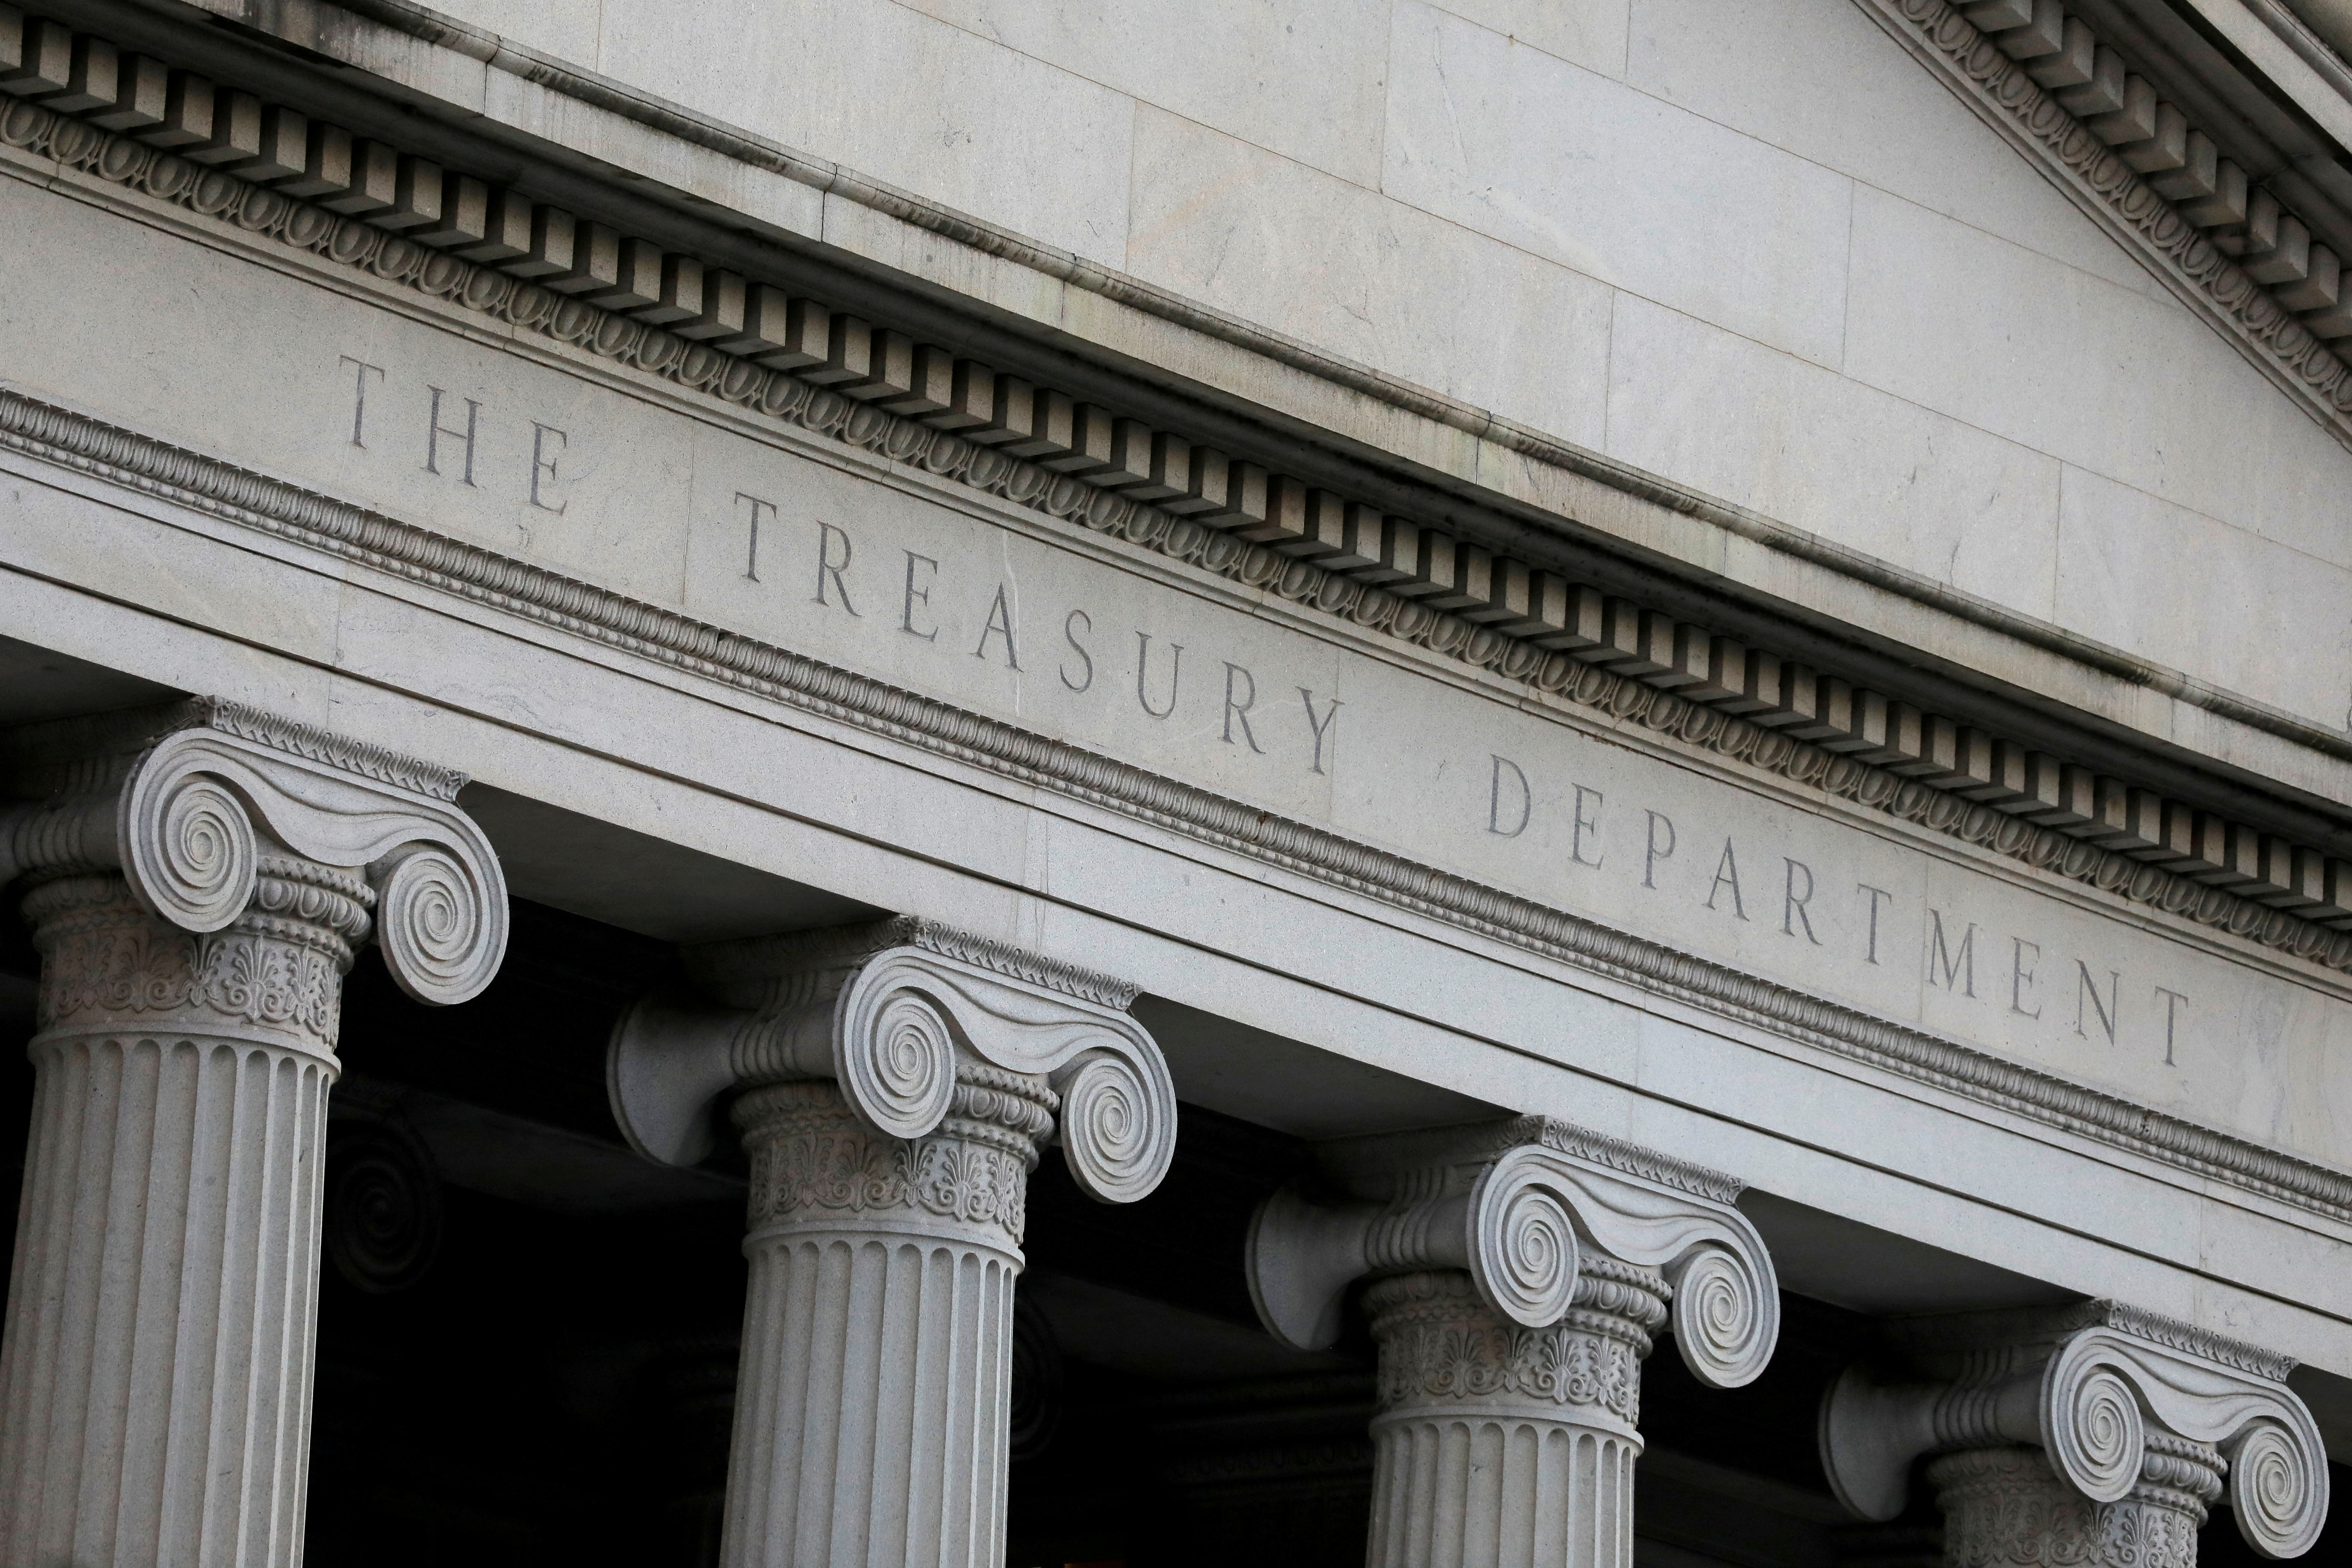 The United States Department of the Treasury is seen in Washington, D.C., U.S., August 30, 2020. REUTERS/Andrew Kelly/File Photo